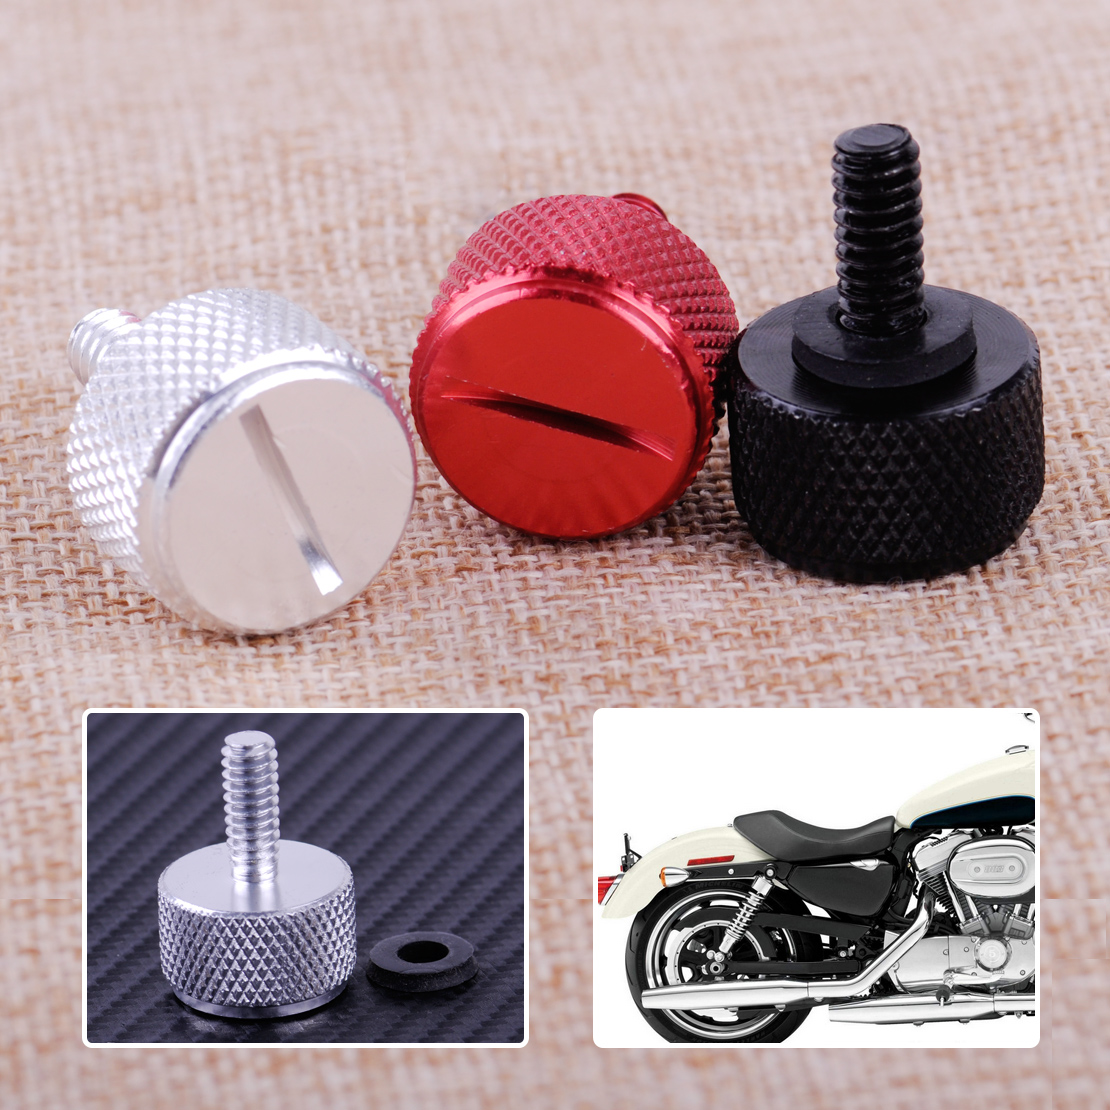 Covers & Ornamental Mouldings Citall Motorcycle 1/4-20 Knurled Seat Screw Bolt Fit For Harley Sportster Wide Glide Roadking Streetbob Dyna Softail Touring To Have Both The Quality Of Tenacity And Hardness Motorcycle Accessories & Parts